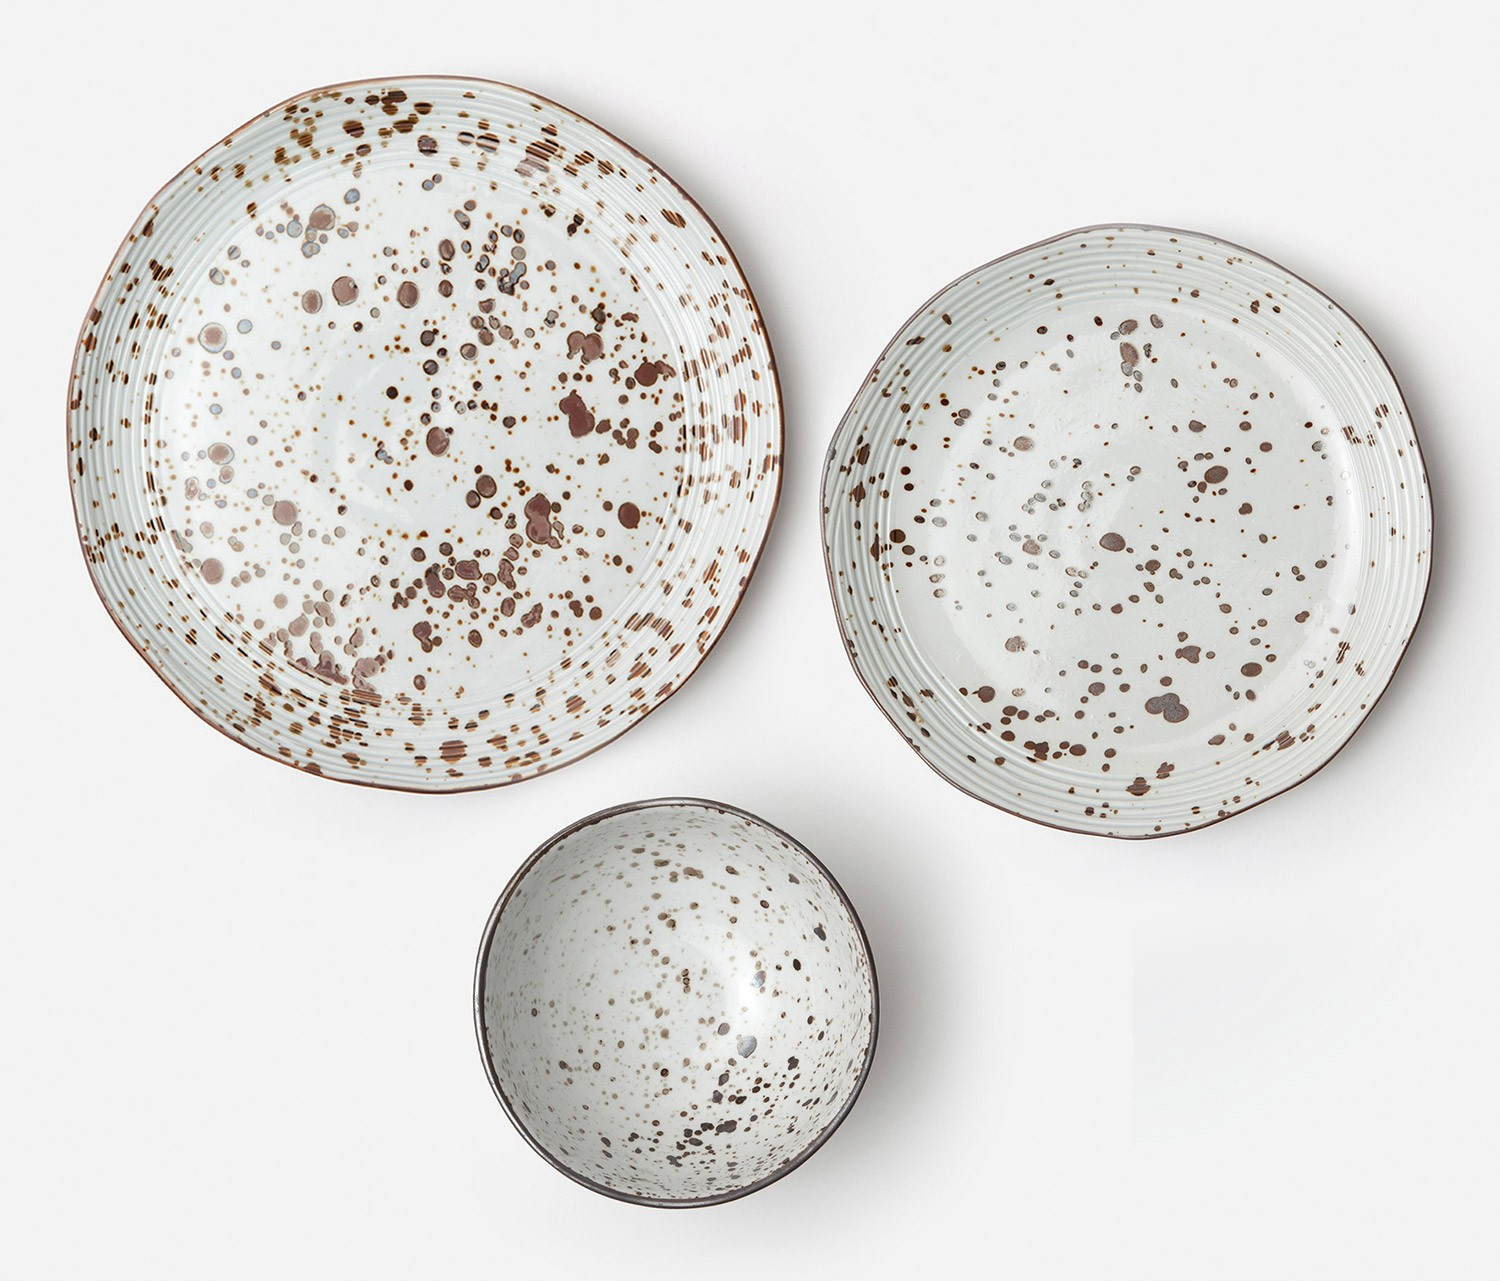 sc 1 st  abode & Speckled White Dinner Plate